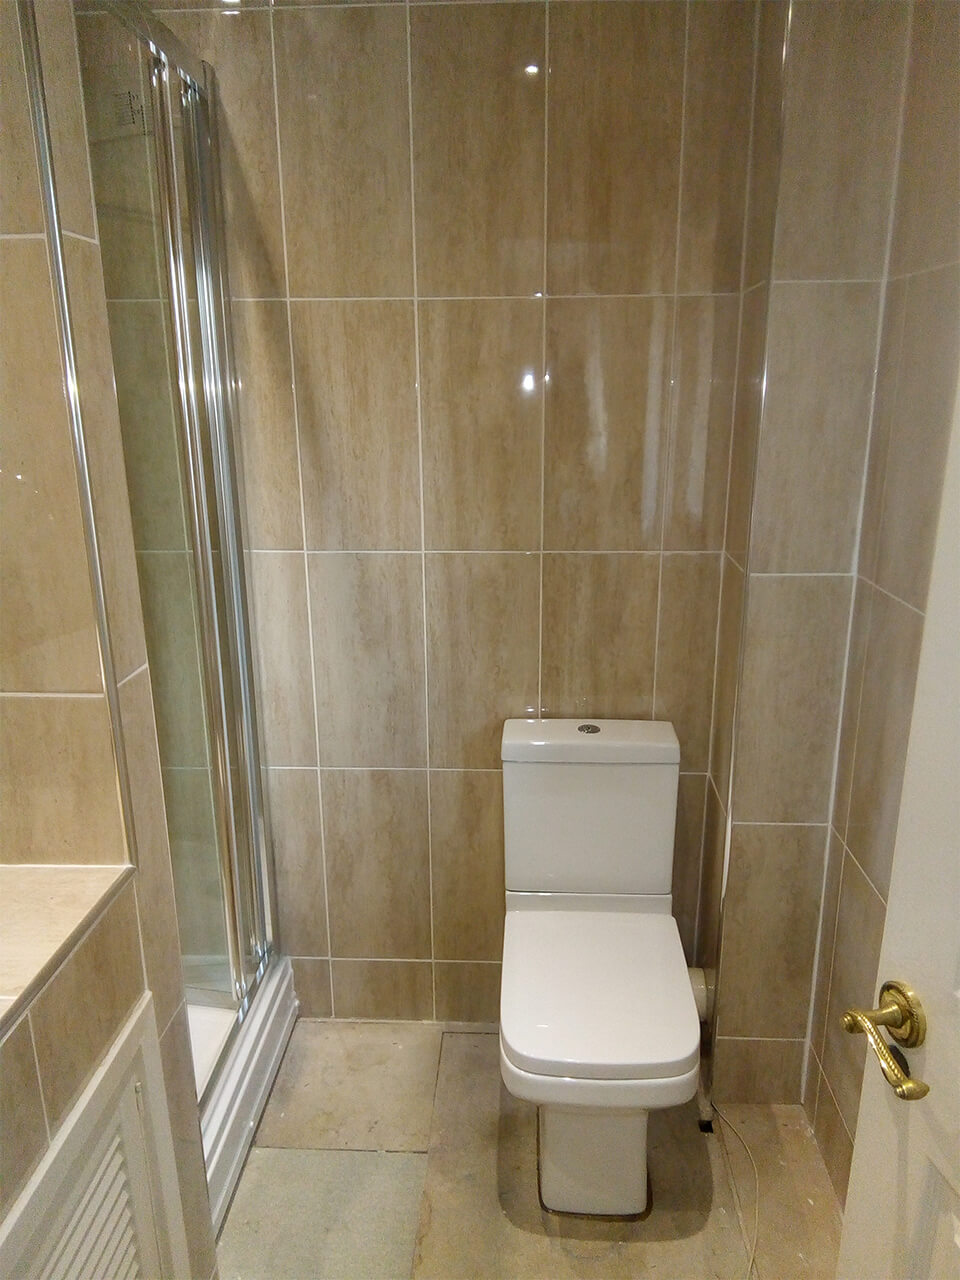 ashmore_plumbing_building_blackpool_bathroom_installation_12